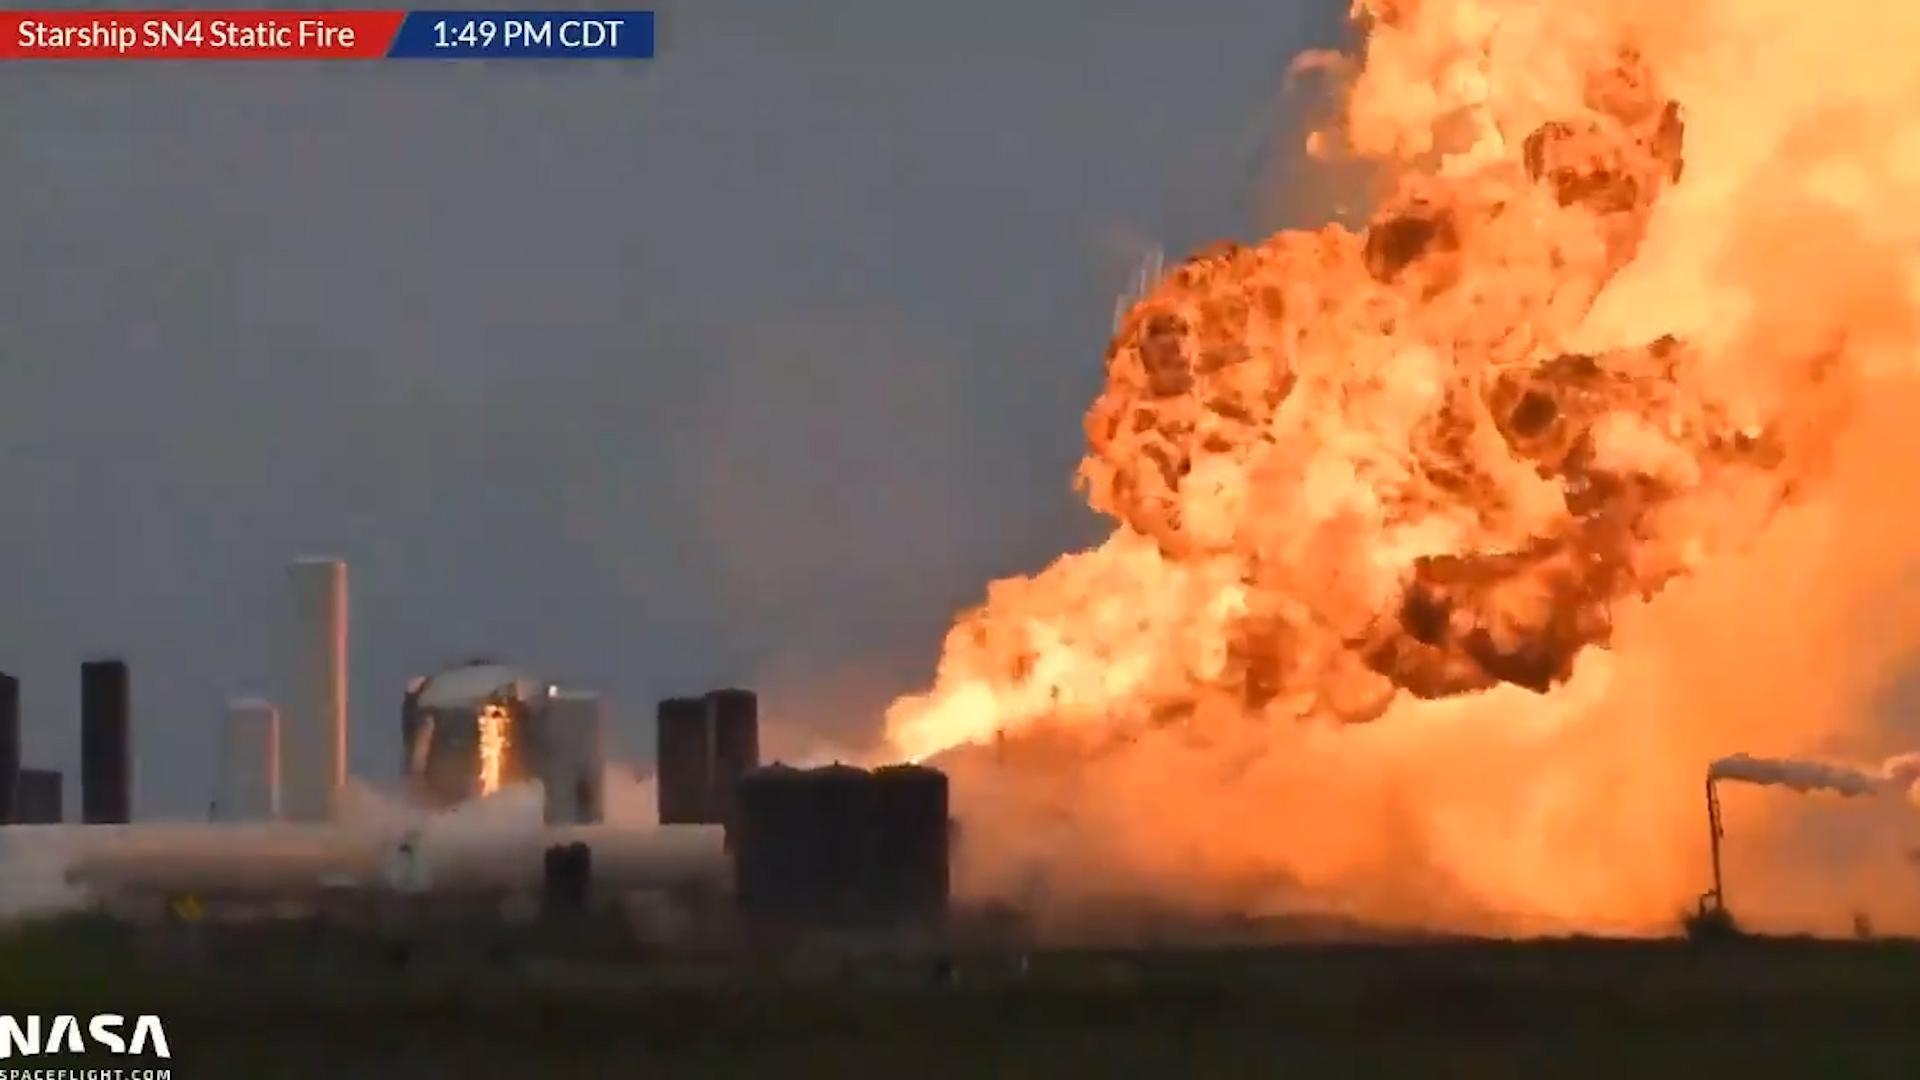 SpaceX Starship prototype destroyed after static-fire test